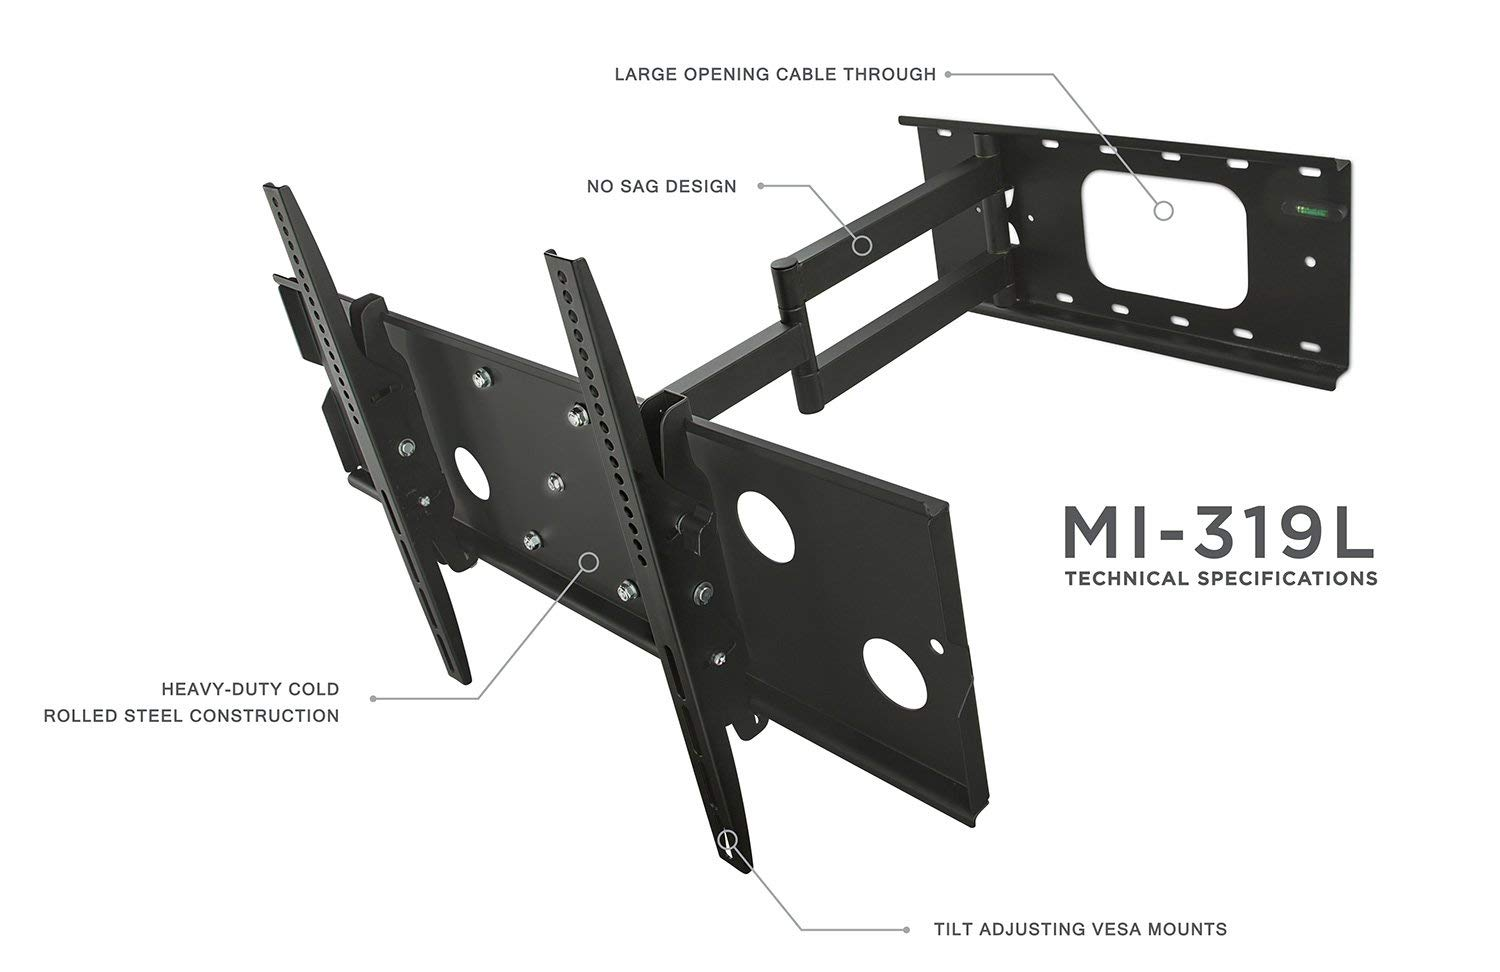 Mount-It! Long Arm TV Wall Mount With 26 Inch Extension, Swing Out Full Motion Design for Corner Installation, Fits 40 50, 55, 60, 65, 70 Inch Flat Screen TVs, 220 Pound Capacity by Everstone (Image #5)